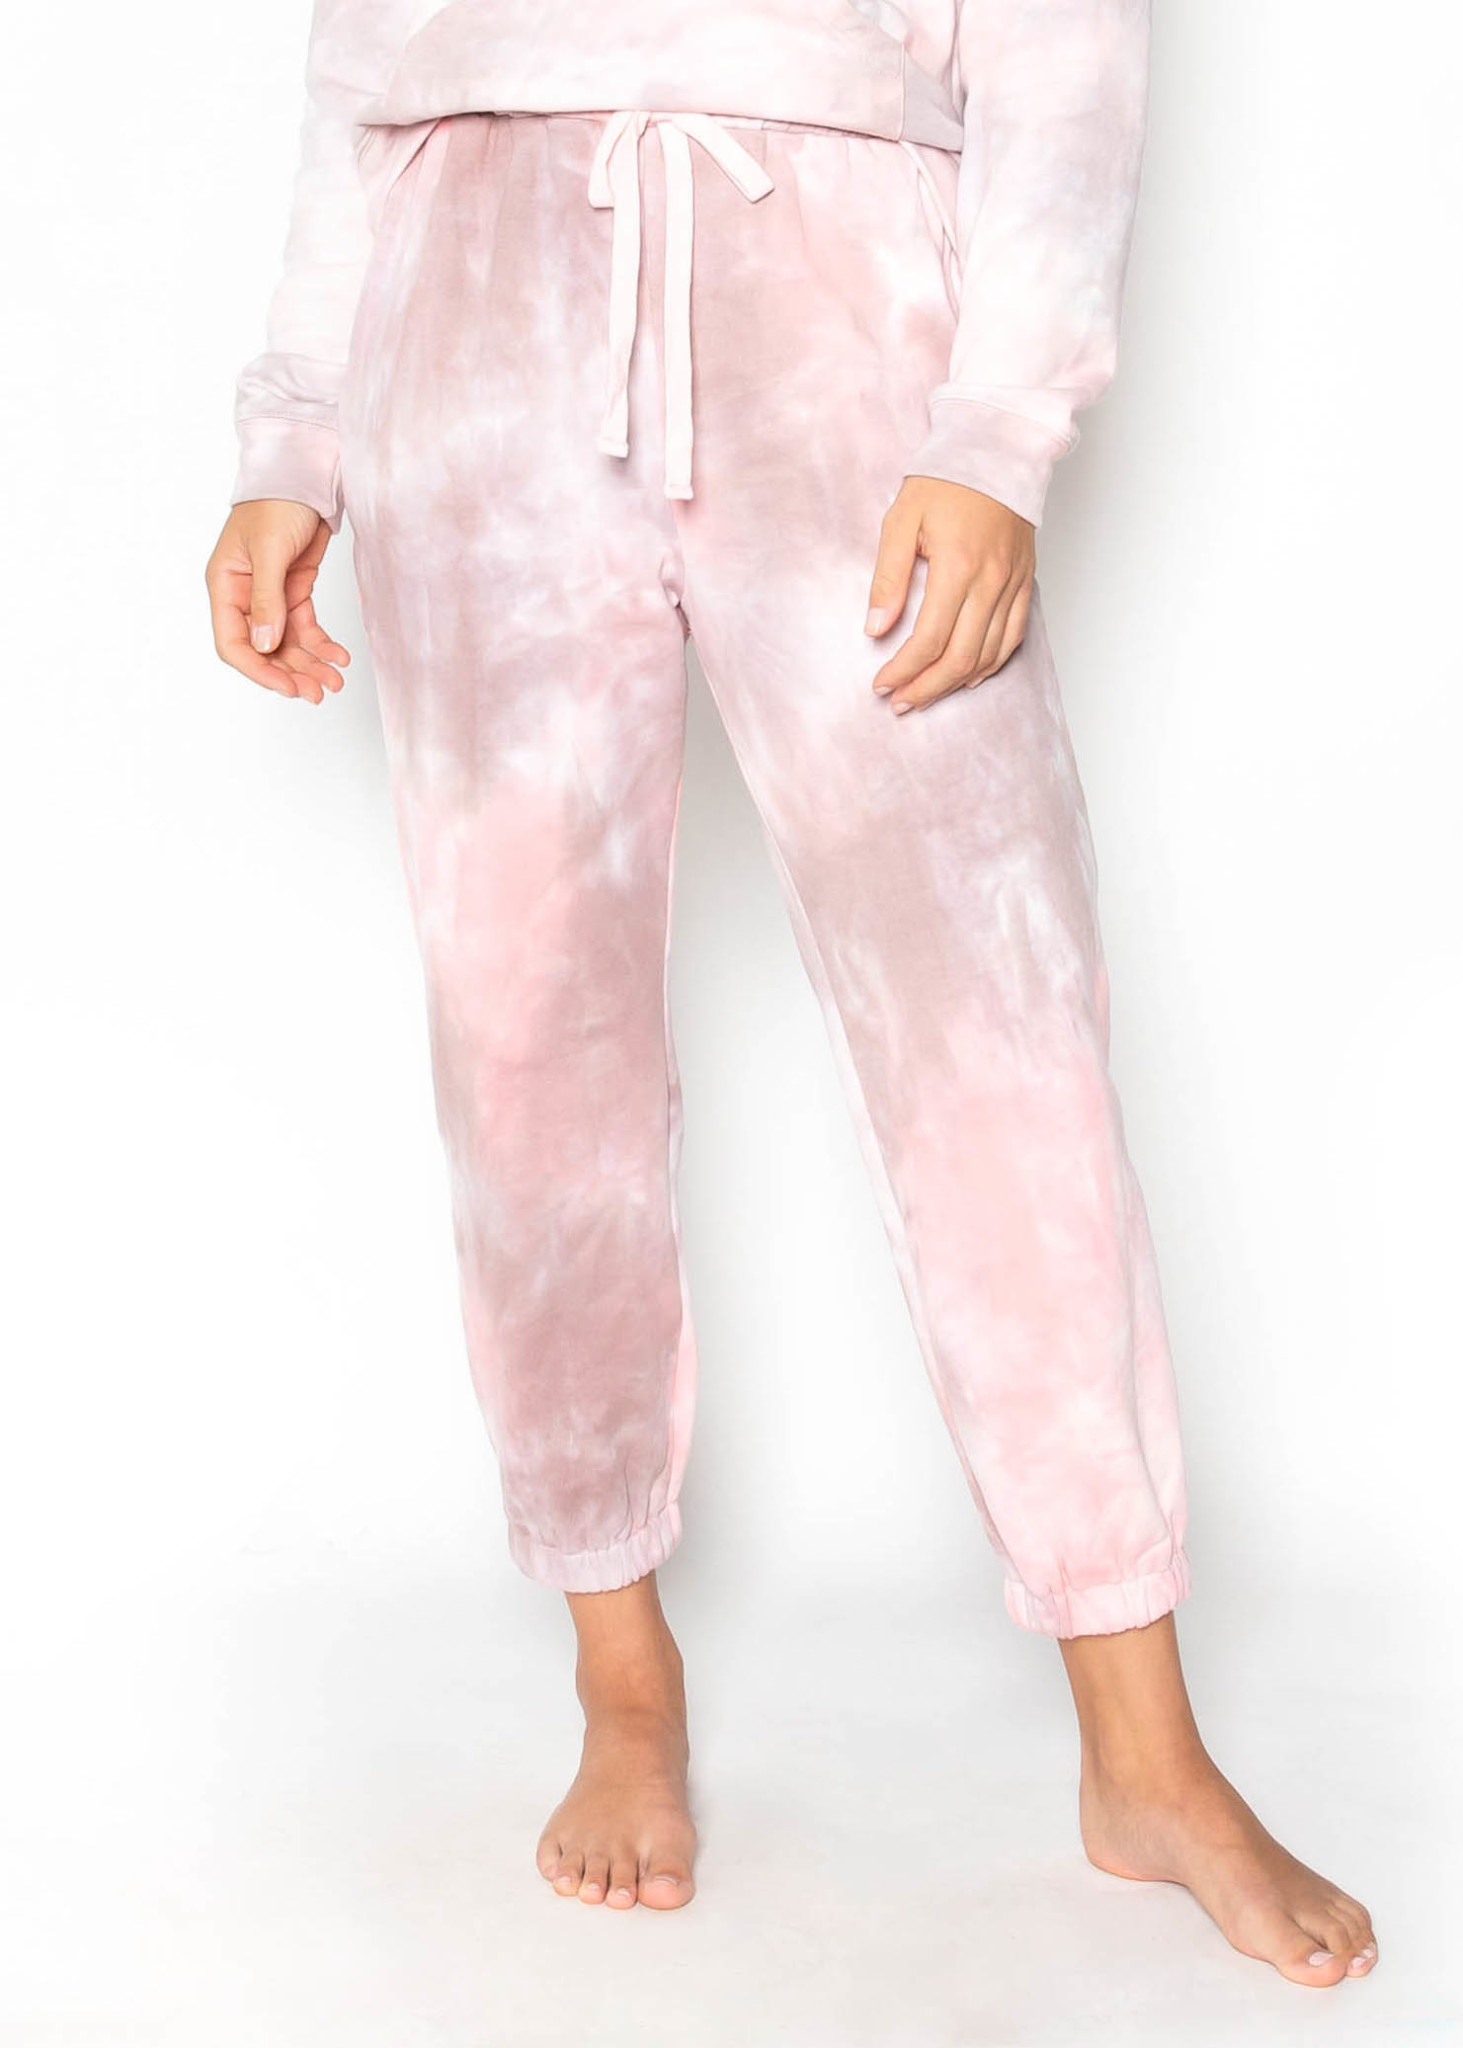 MOVIE NIGHT TIE DYE JOGGERS